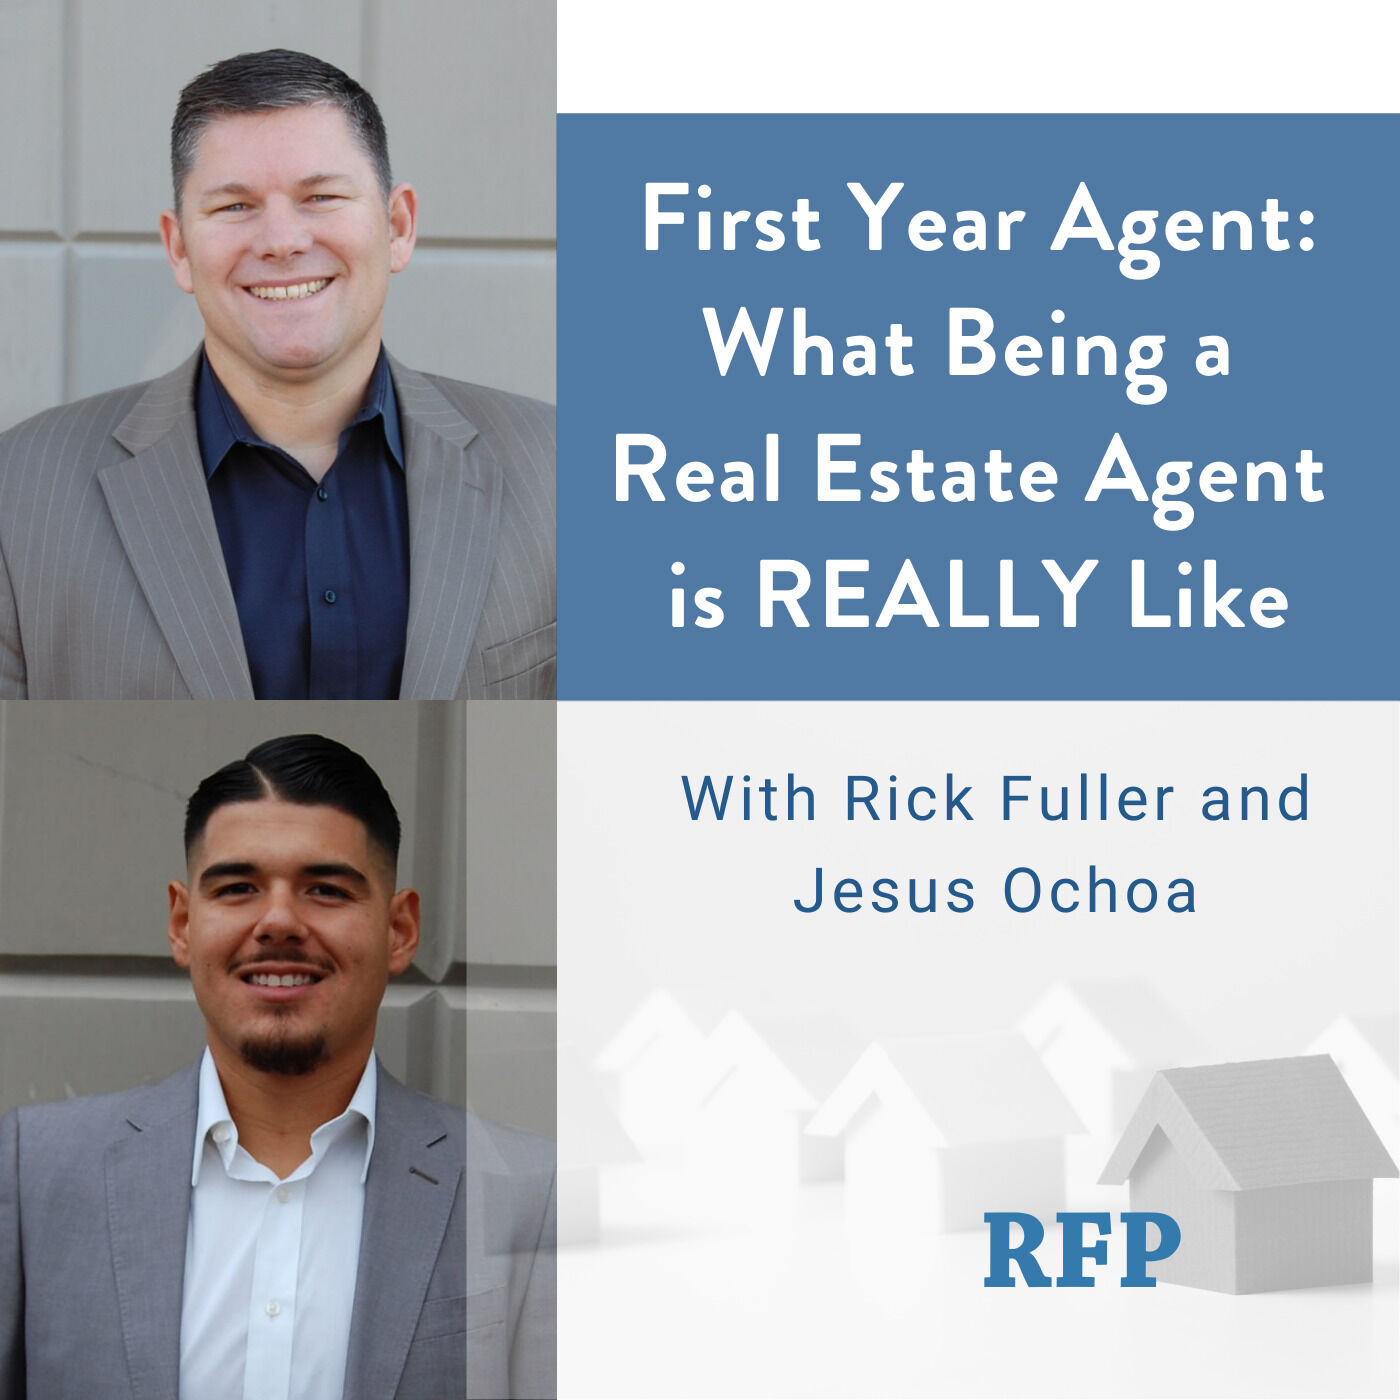 First Year Agent: What Being a Real Estate Agent is REALLY Like